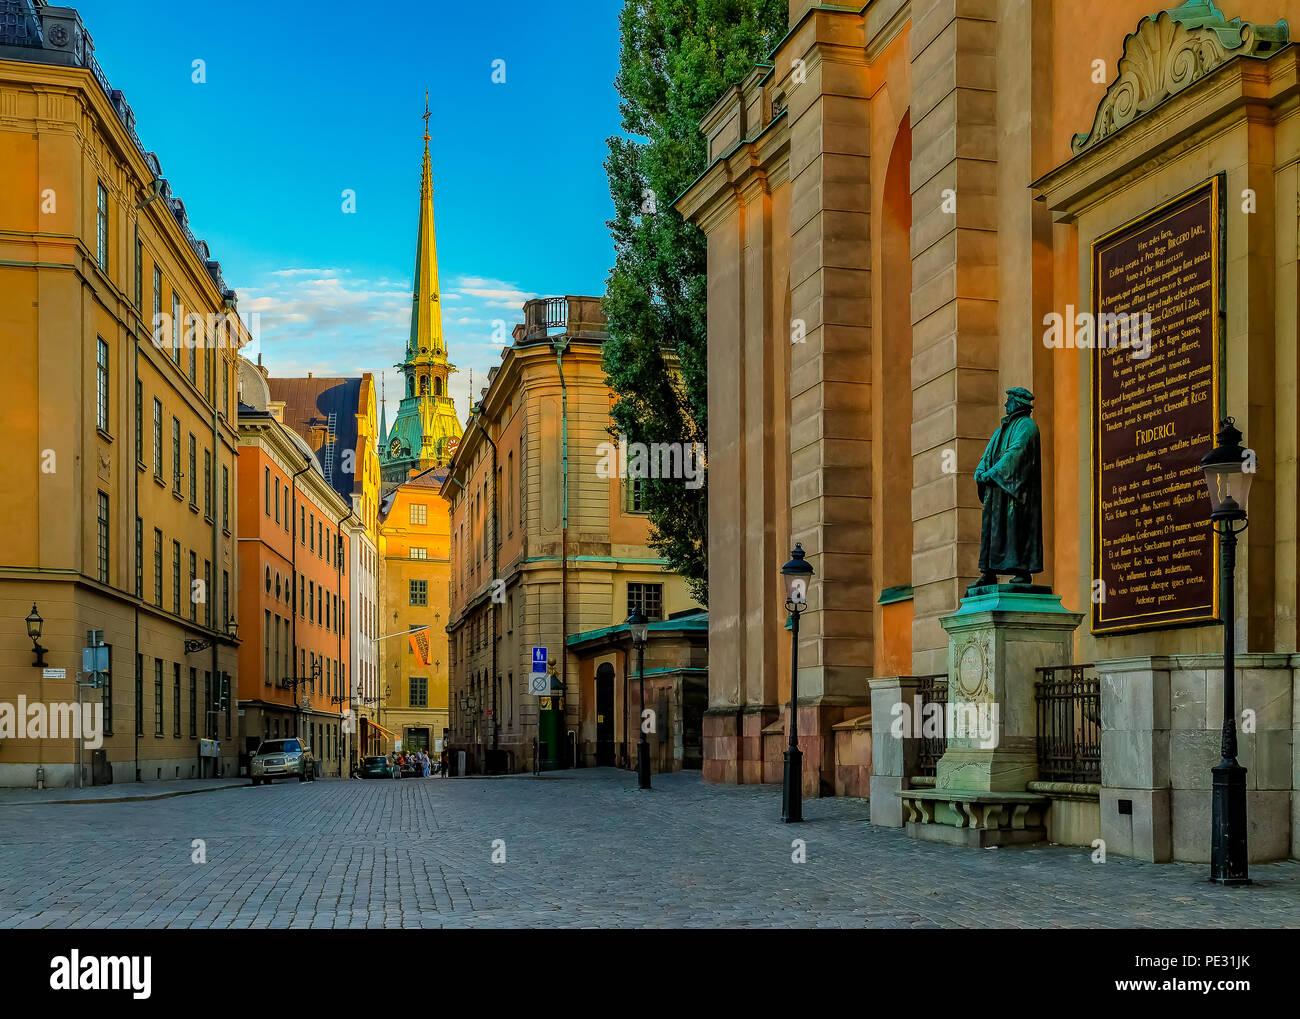 Stockholm, Sweden - August 11, 2017: View onto traditional gothic buildings and the gates of Storkyrkan or Stockholm Cathedral in the old town, Gamla  - Stock Image